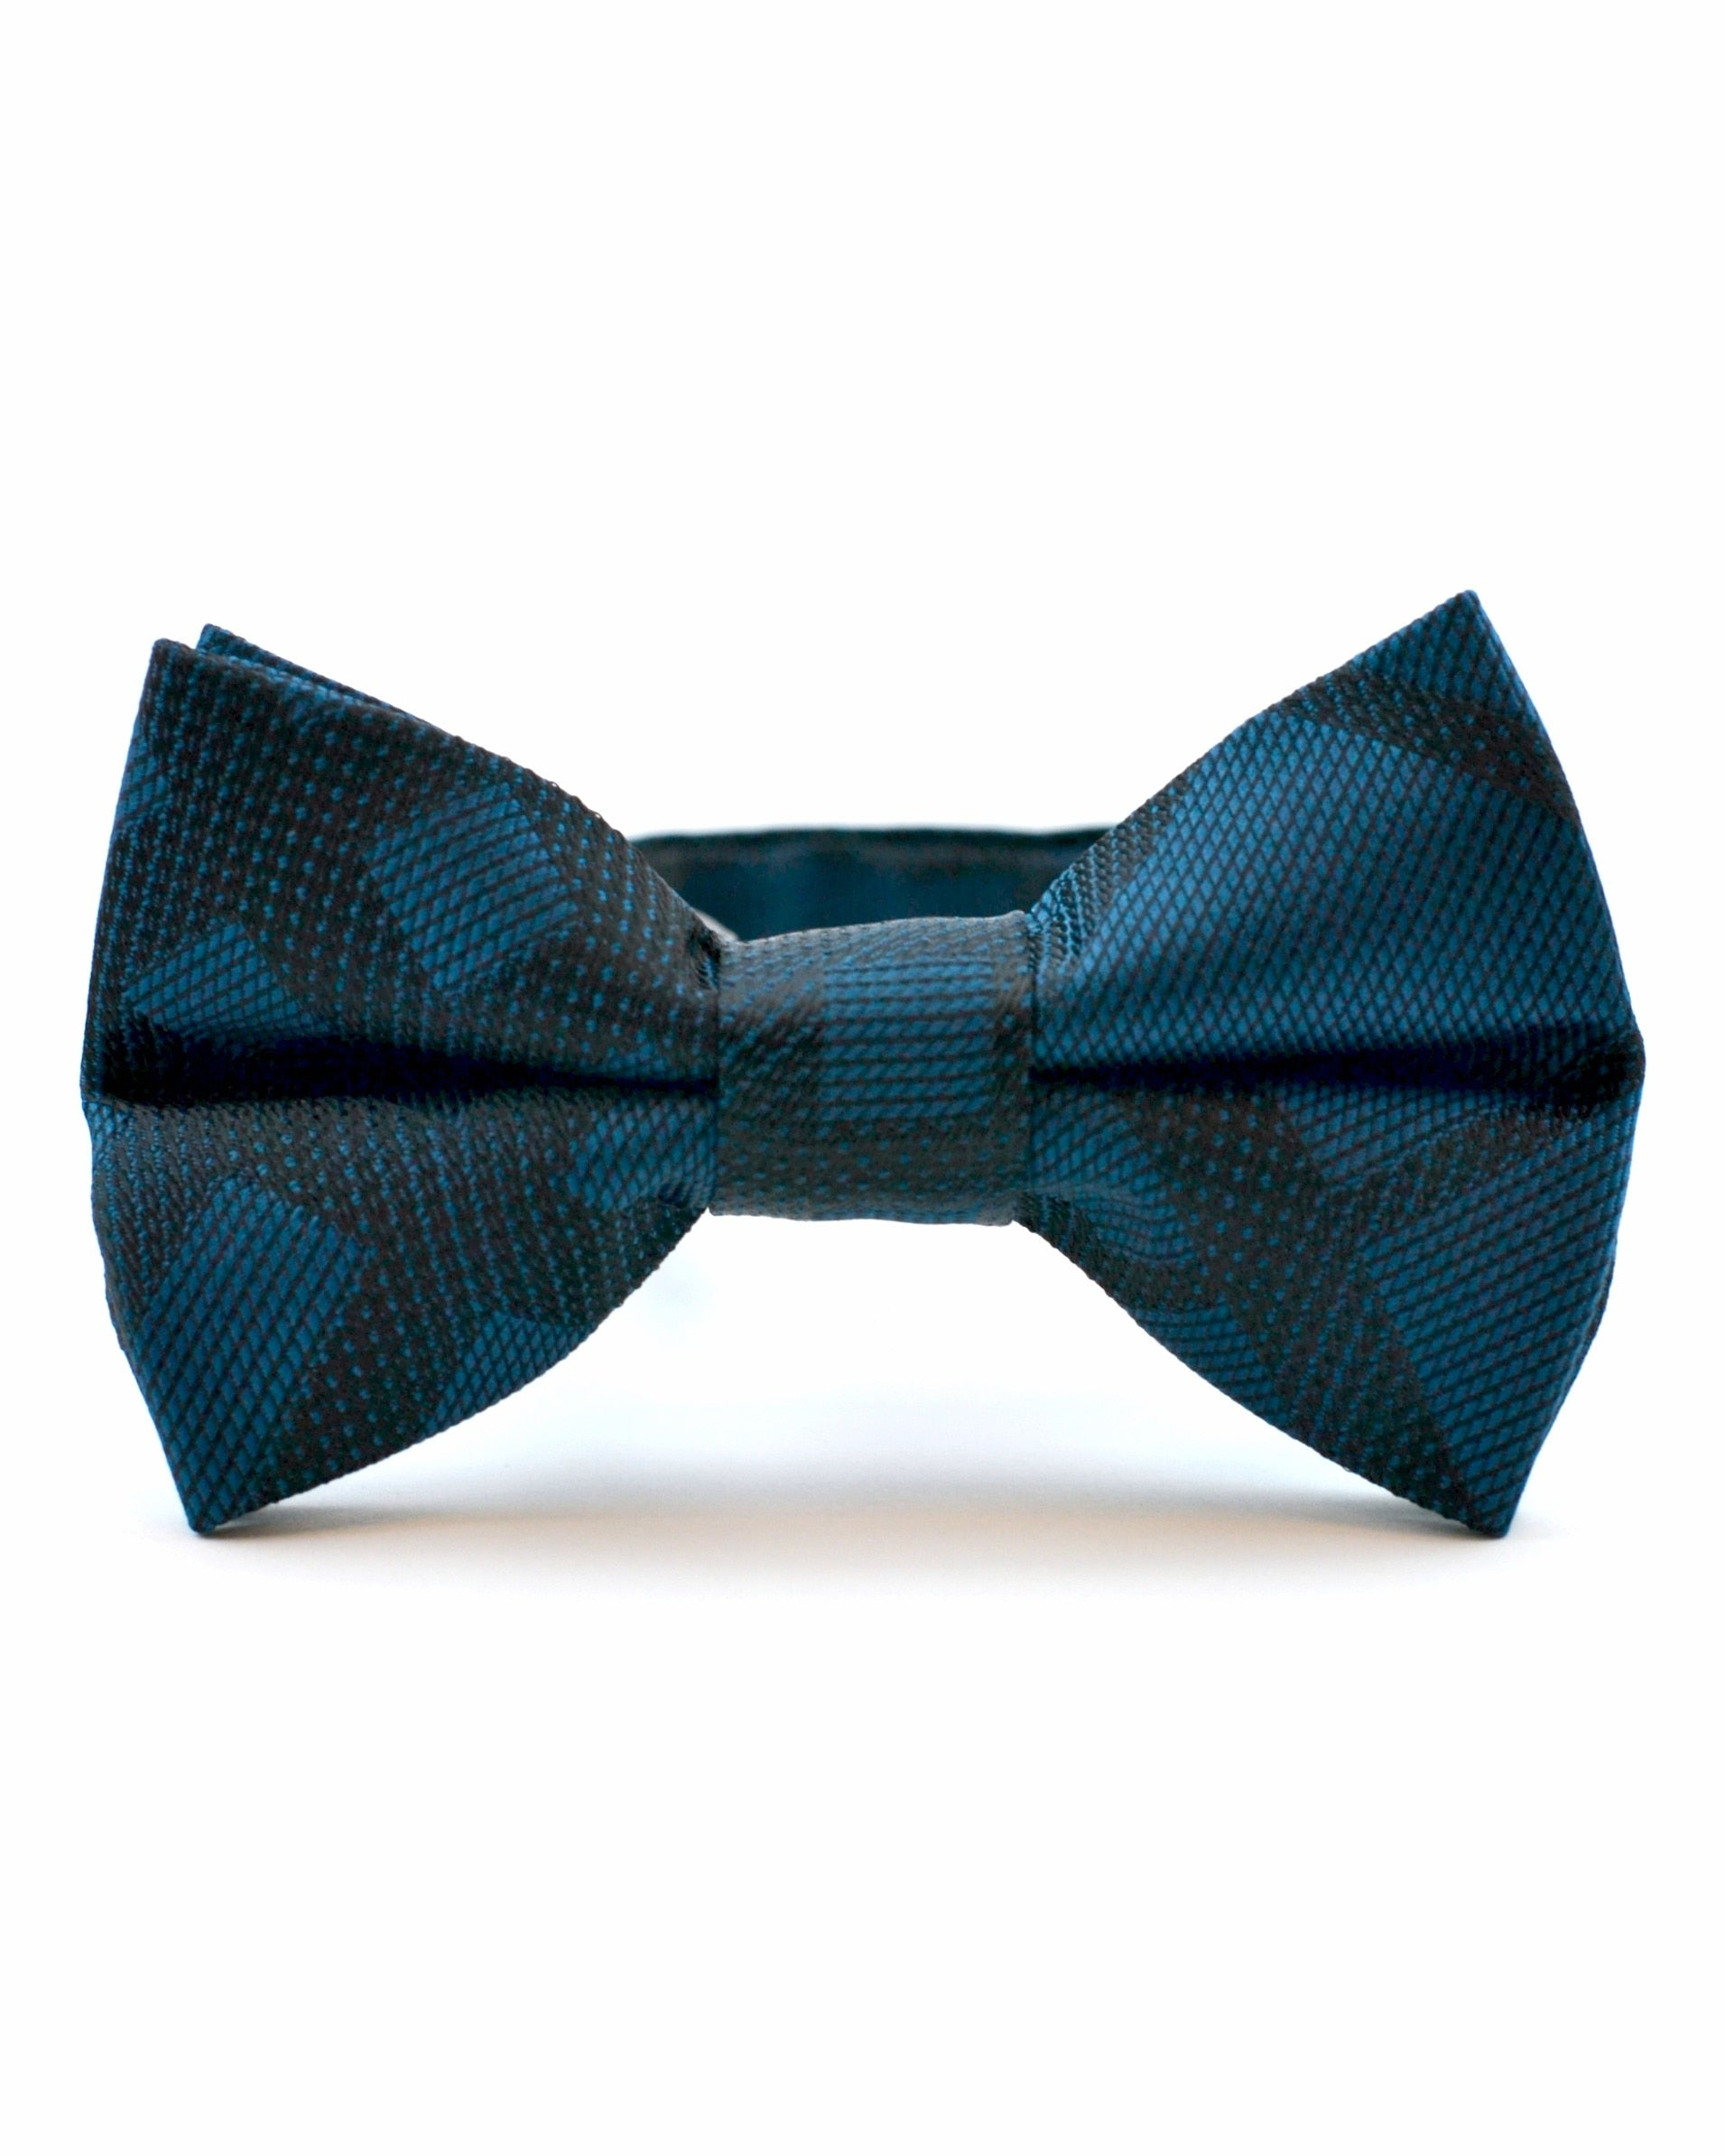 deep-teal-and-black-plaid-bow.jpg